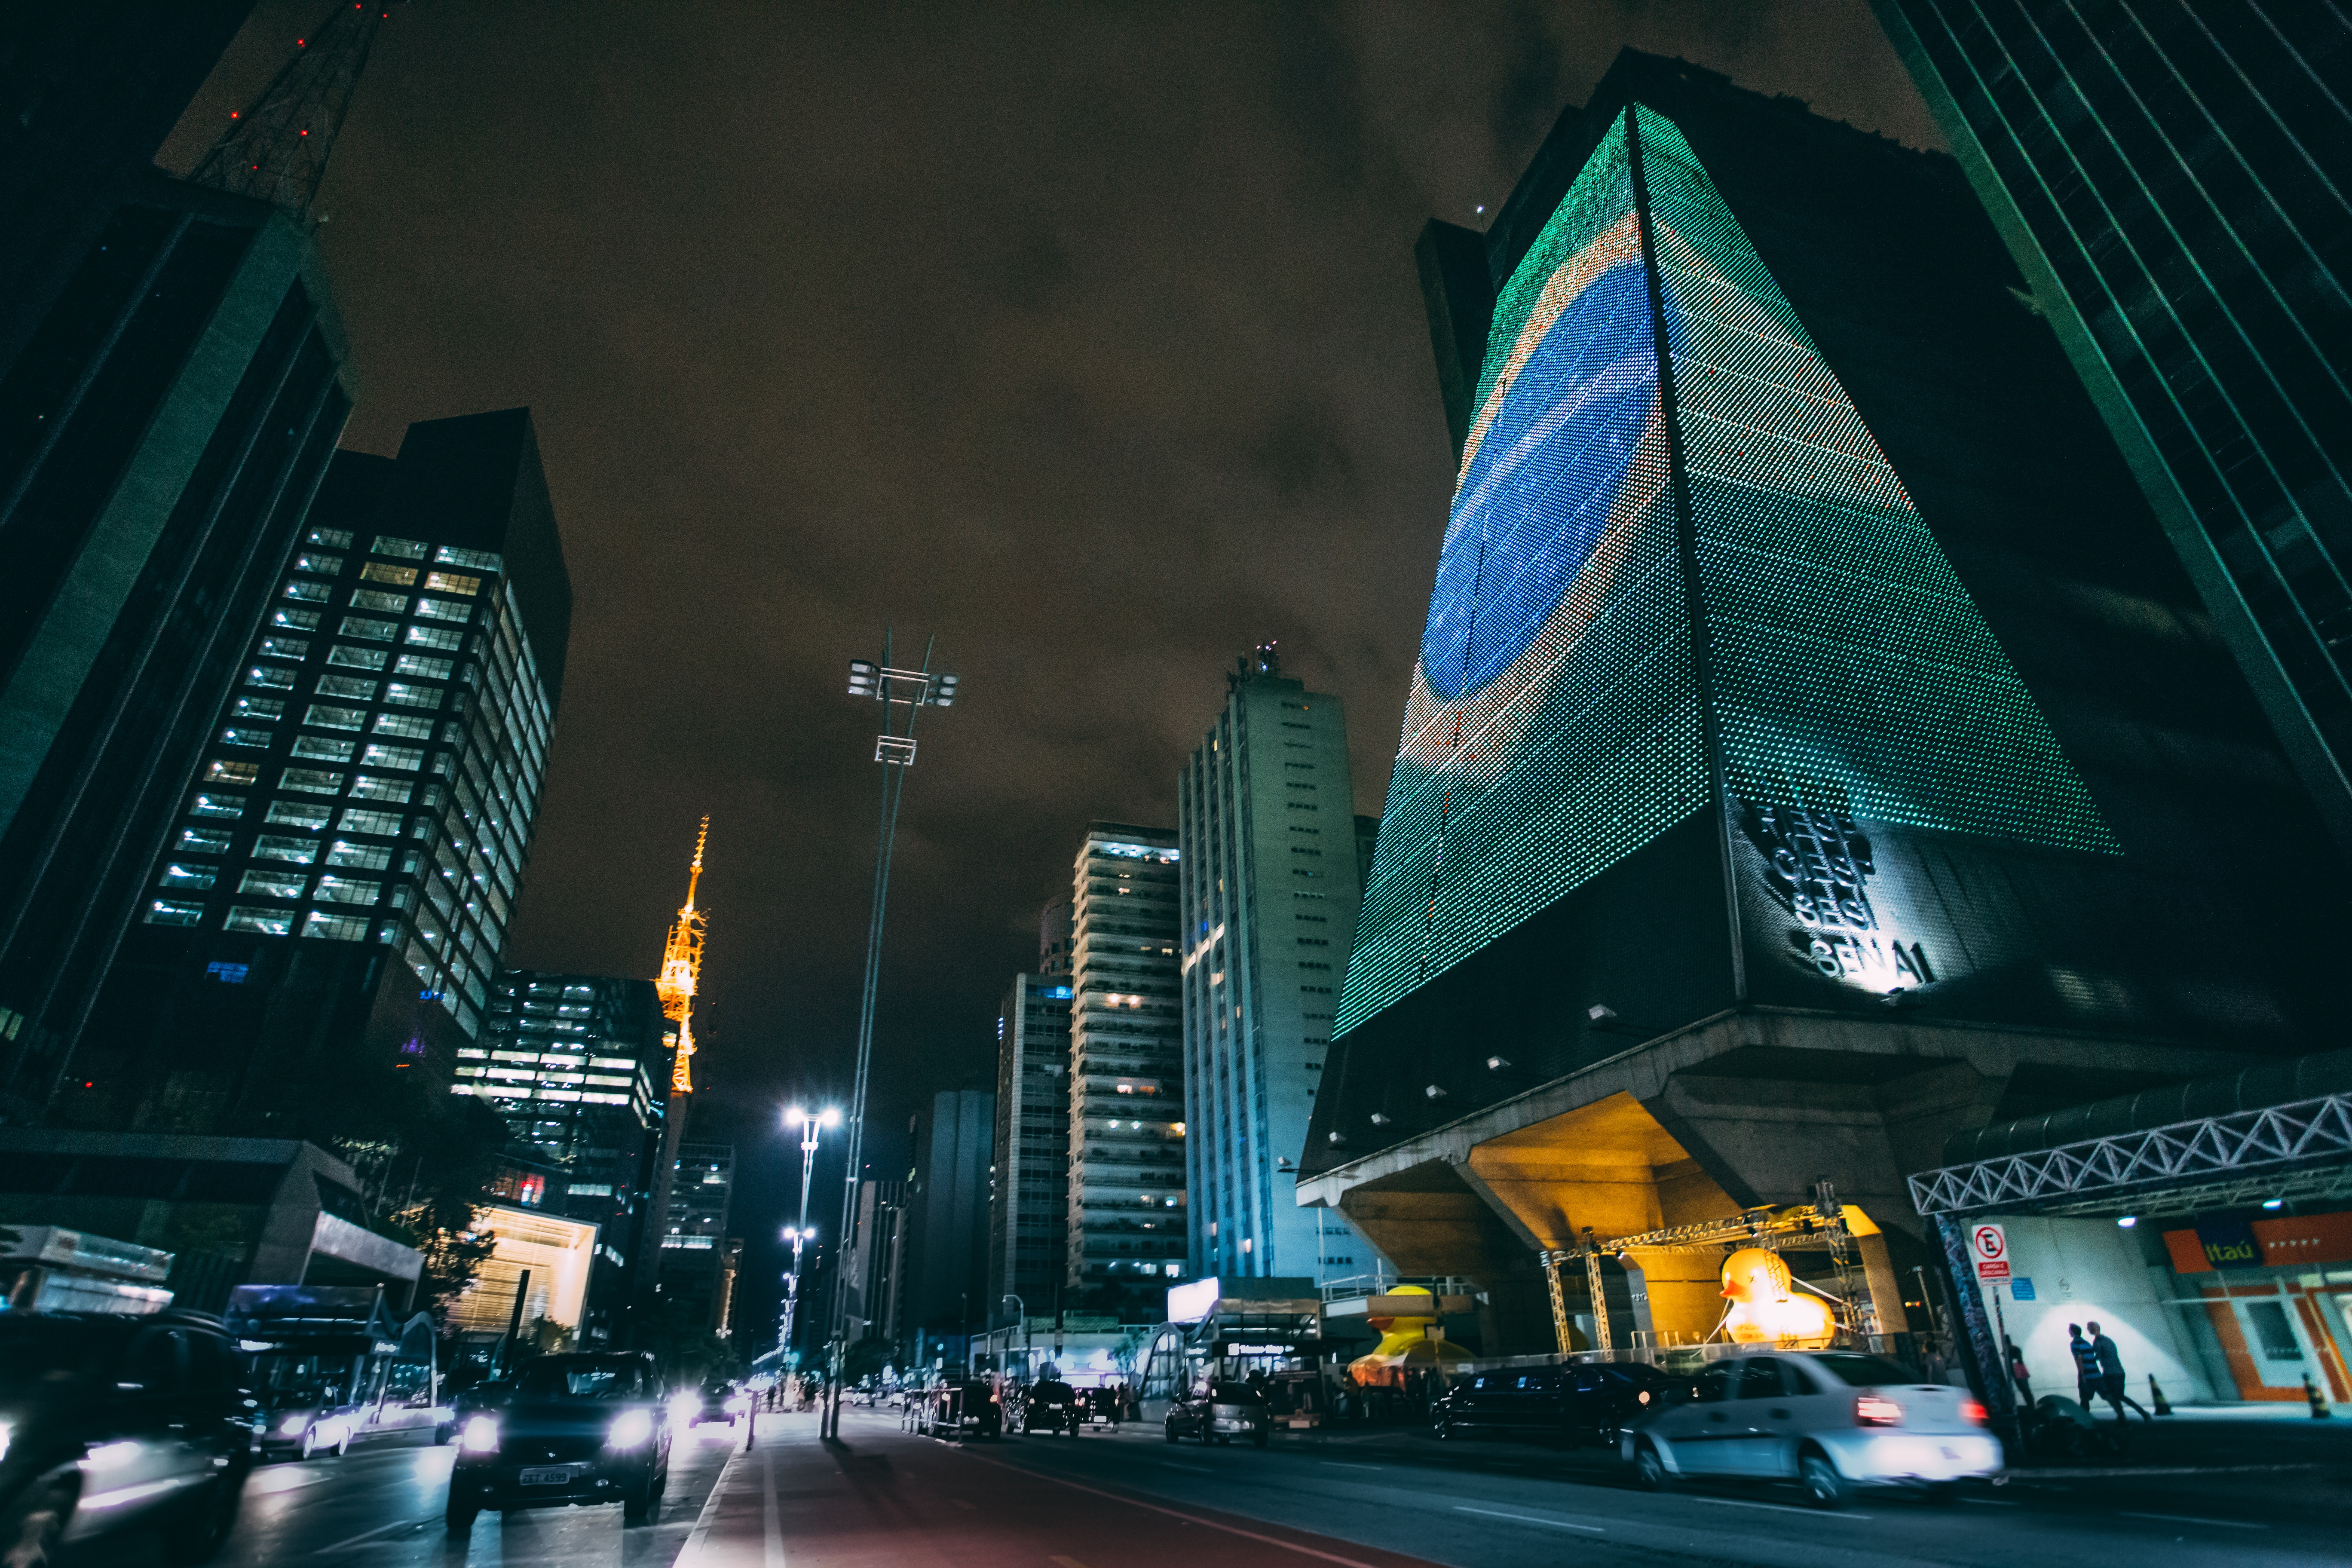 Cars traveling on road between buildings during nighttime photo